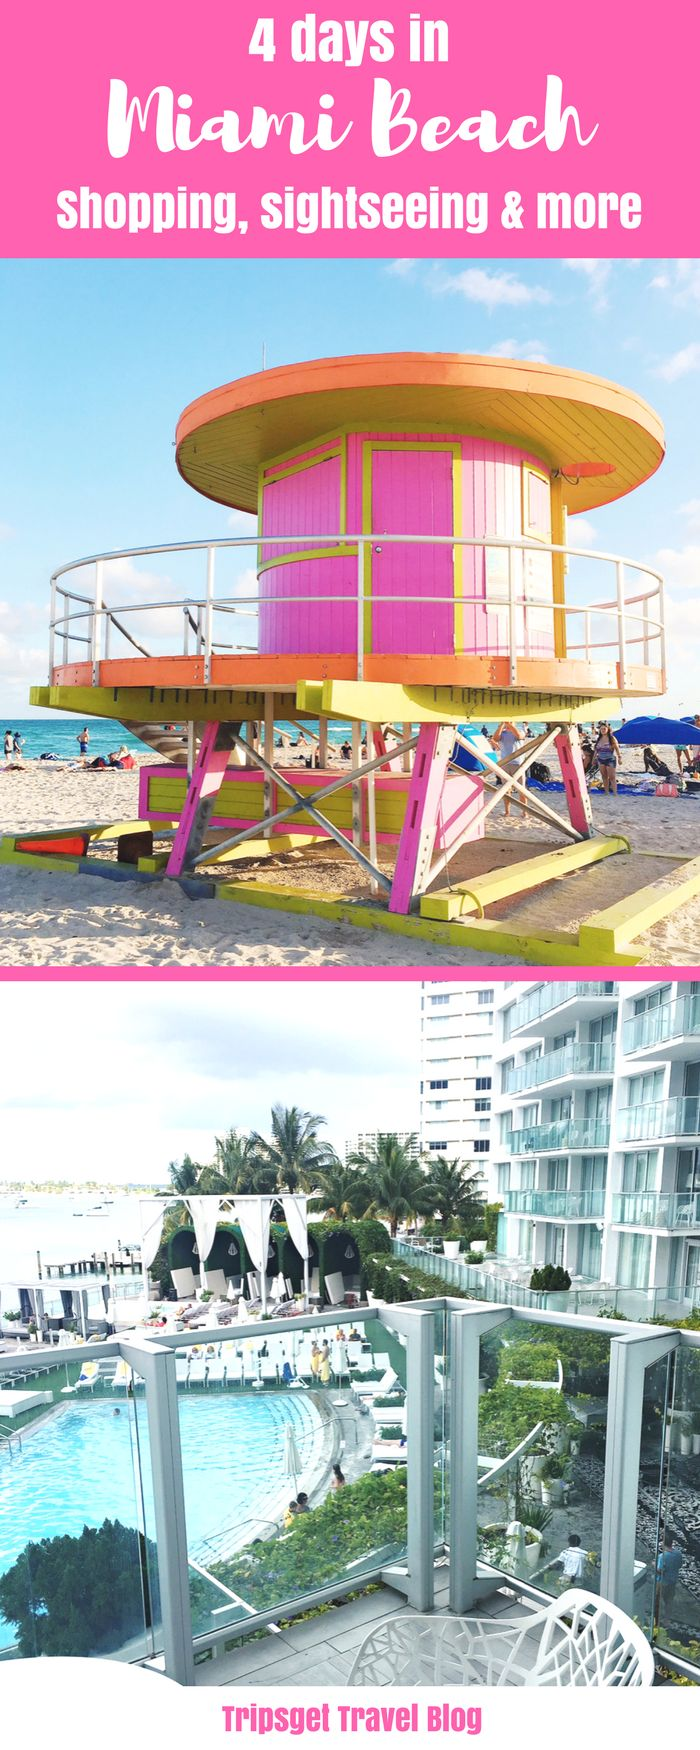 4 days in Miami Beach: from Sightseeing to Shopping. Food in Miami Beach. Sawgrass Mills. Miami Downtown. Things to do in Miami. South Beach! Baywatch :)